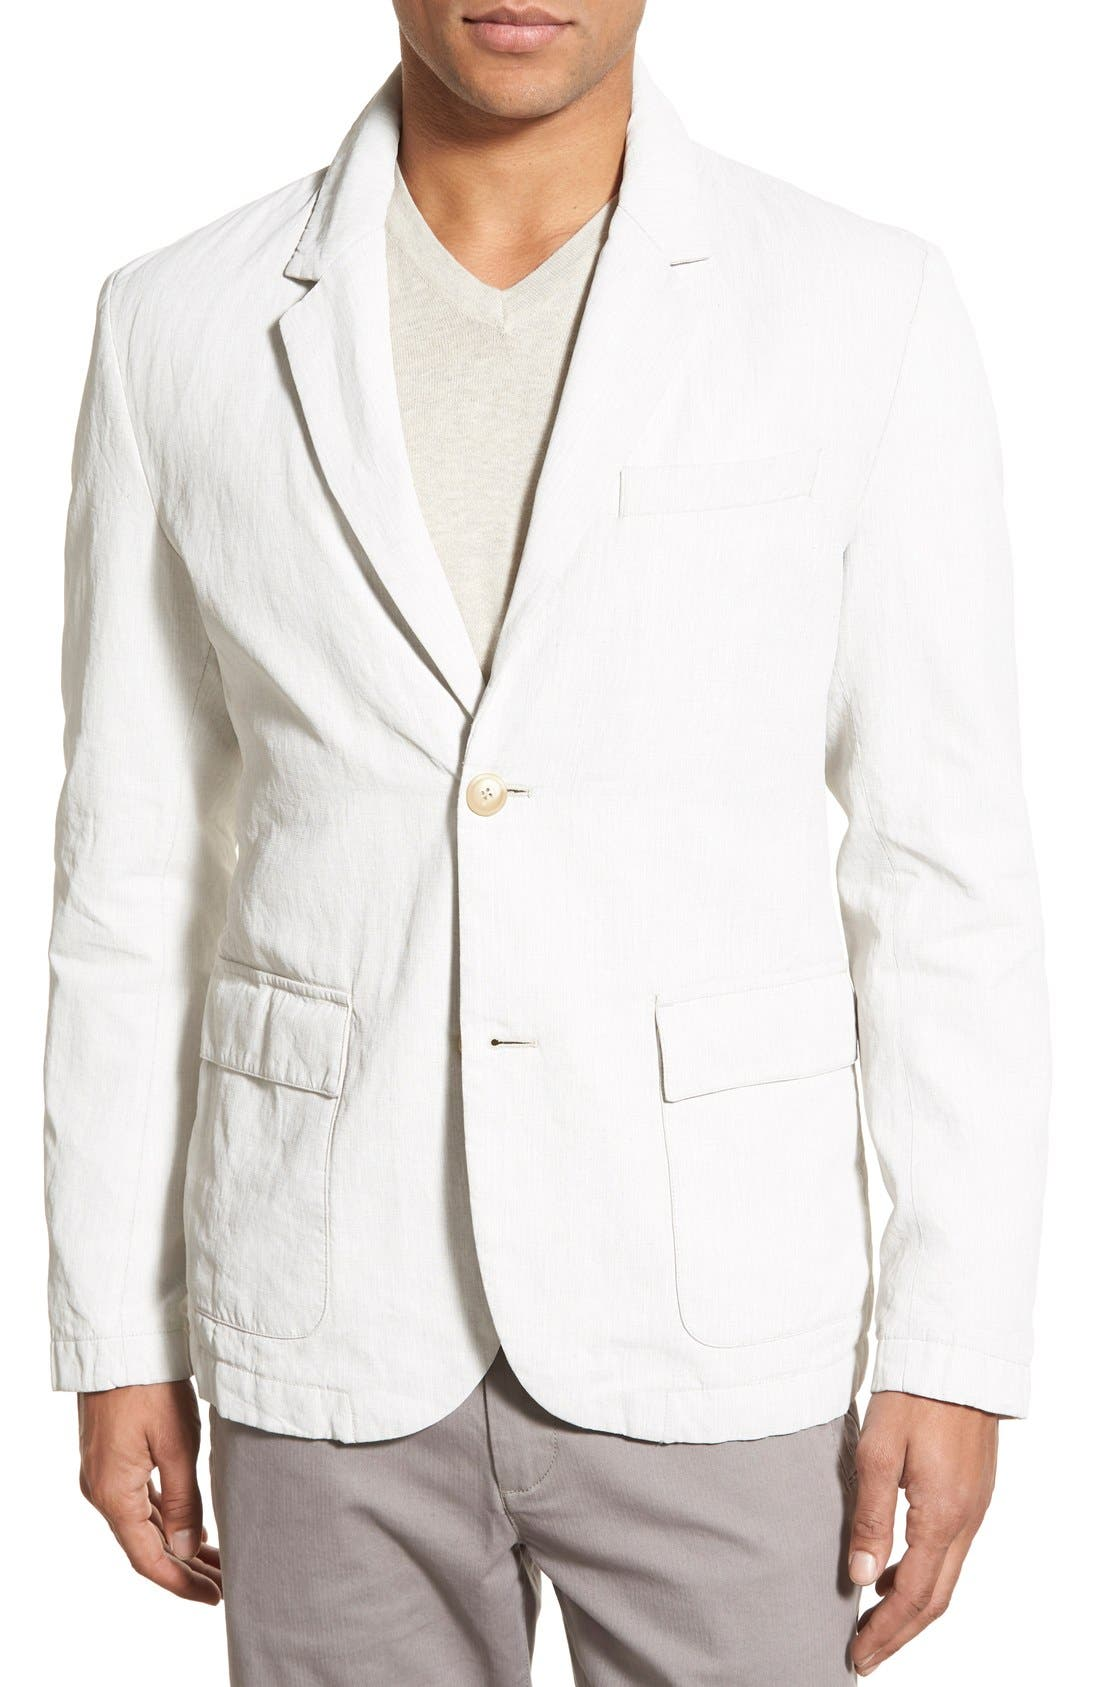 Alternate Image 1 Selected - James Perse Linen Blend Sport Coat